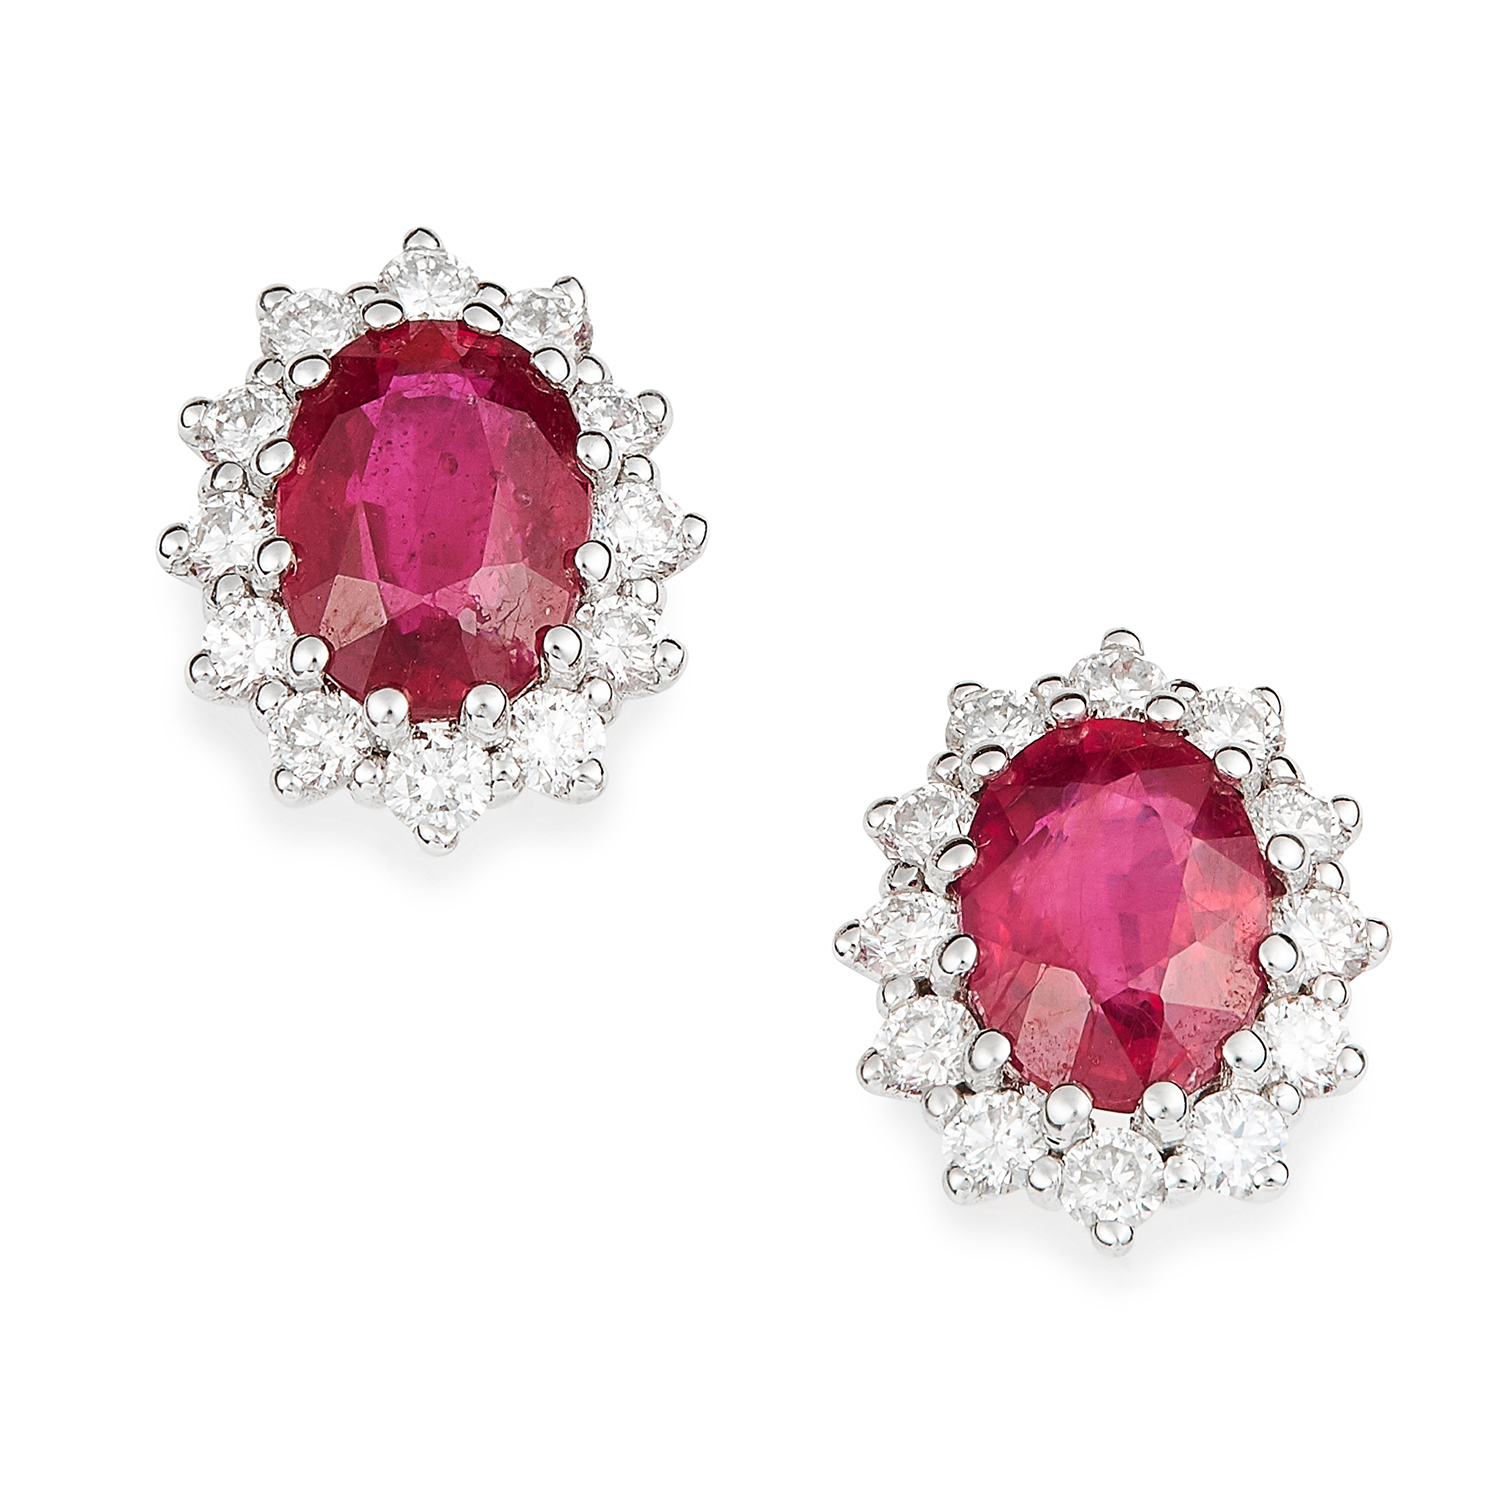 RUBY AND DIAMOND CLUSTER EARRINGS in 18ct white gold, each set with an oval cut ruby in a cluster of